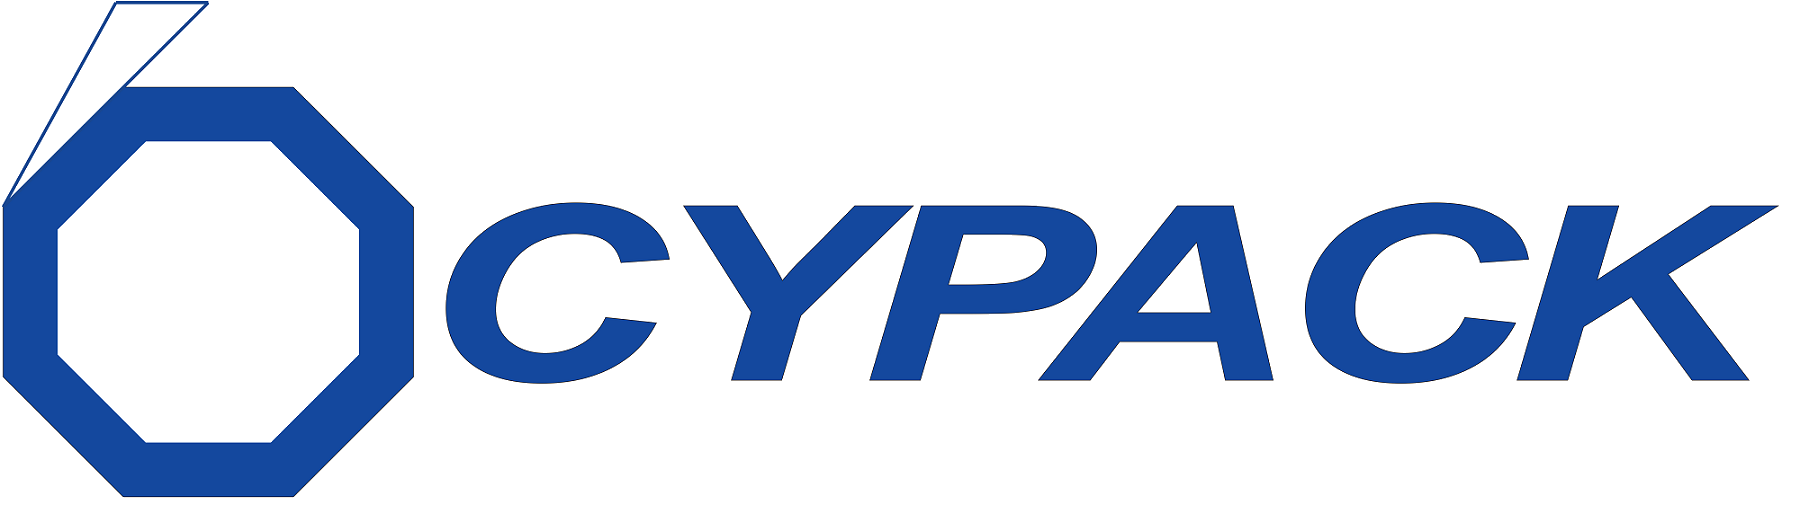 Cypack